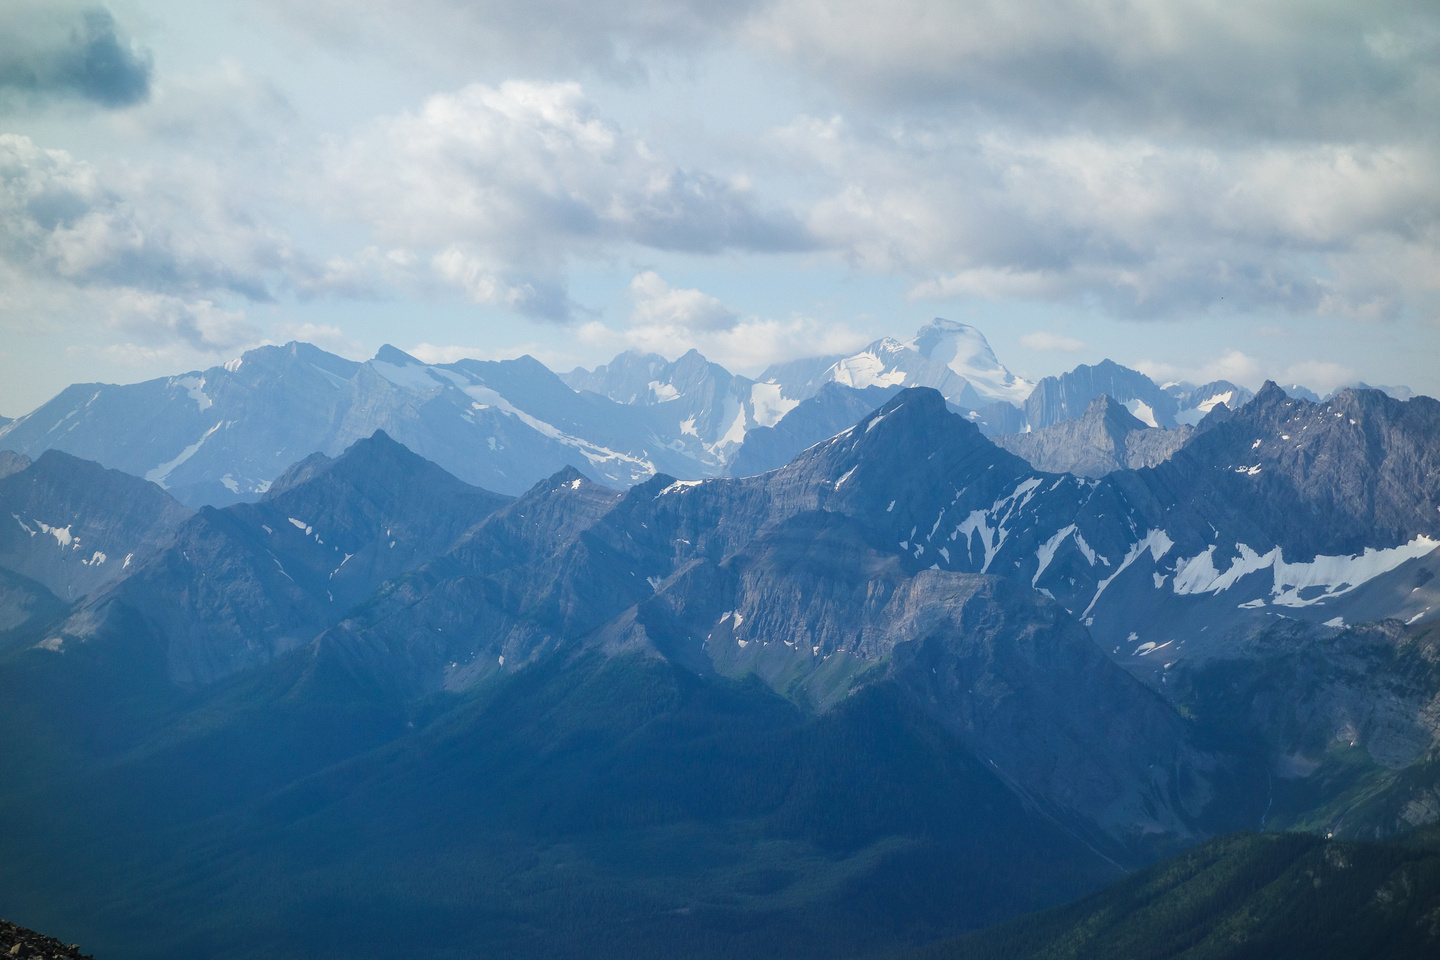 Mounts Sarrail and Joffre across the Kananaskis Lakes region.